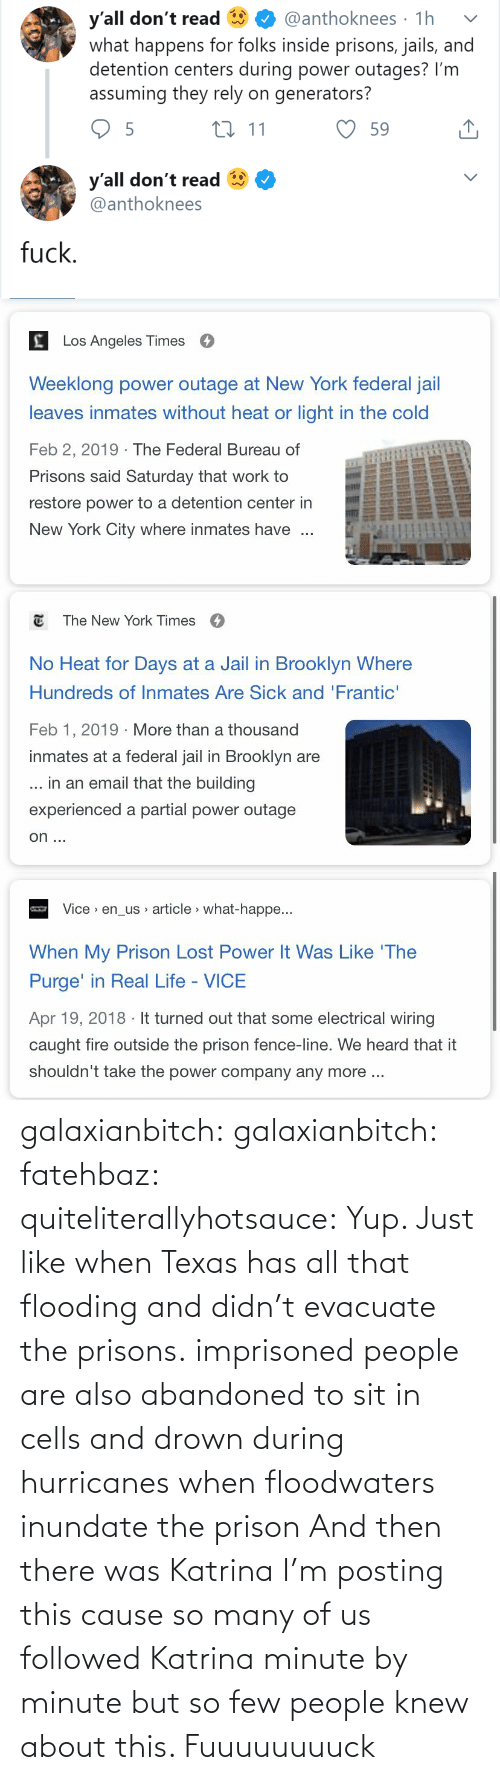 Brooklyn: y'all don't read  what happens for folks inside prisons, jails, and  detention centers during power outages? I'm  assuming they rely on generators?  @anthoknees · 1h  27 11  59  y'all don't read  @anthoknees  fuck.   Los Angeles Times  Weeklong power outage at New York federal jail  leaves inmates without heat or light in the cold  Feb 2, 2019 · The Federal Bureau of  Prisons said Saturday that work to  restore power to a detention center in  New York City where inmates have   E The New York Times  O  No Heat for Days at a Jail in Brooklyn Where  Hundreds of Inmates Are Sick and 'Frantic'  Feb 1, 2019 · More than a thousand  inmates at a federal jail in Brooklyn are  ... in an email that the building  experienced a partial power outage  on ...   Vice > en_us article > what-happe...  When My Prison Lost Power It Was Like 'The  Purge' in Real Life - VICE  Apr 19, 2018 · It turned out that some electrical wiring  caught fire outside the prison fence-line. We heard that it  shouldn't take the power company any more .. galaxianbitch: galaxianbitch:   fatehbaz:  quiteliterallyhotsauce:   Yup. Just like when Texas has all that flooding and didn't evacuate the prisons.   imprisoned people are also abandoned to sit in cells and drown during hurricanes when floodwaters inundate the prison   And then there was Katrina        I'm posting this cause so many of us followed Katrina minute by minute but so few people knew about this.    Fuuuuuuuuck